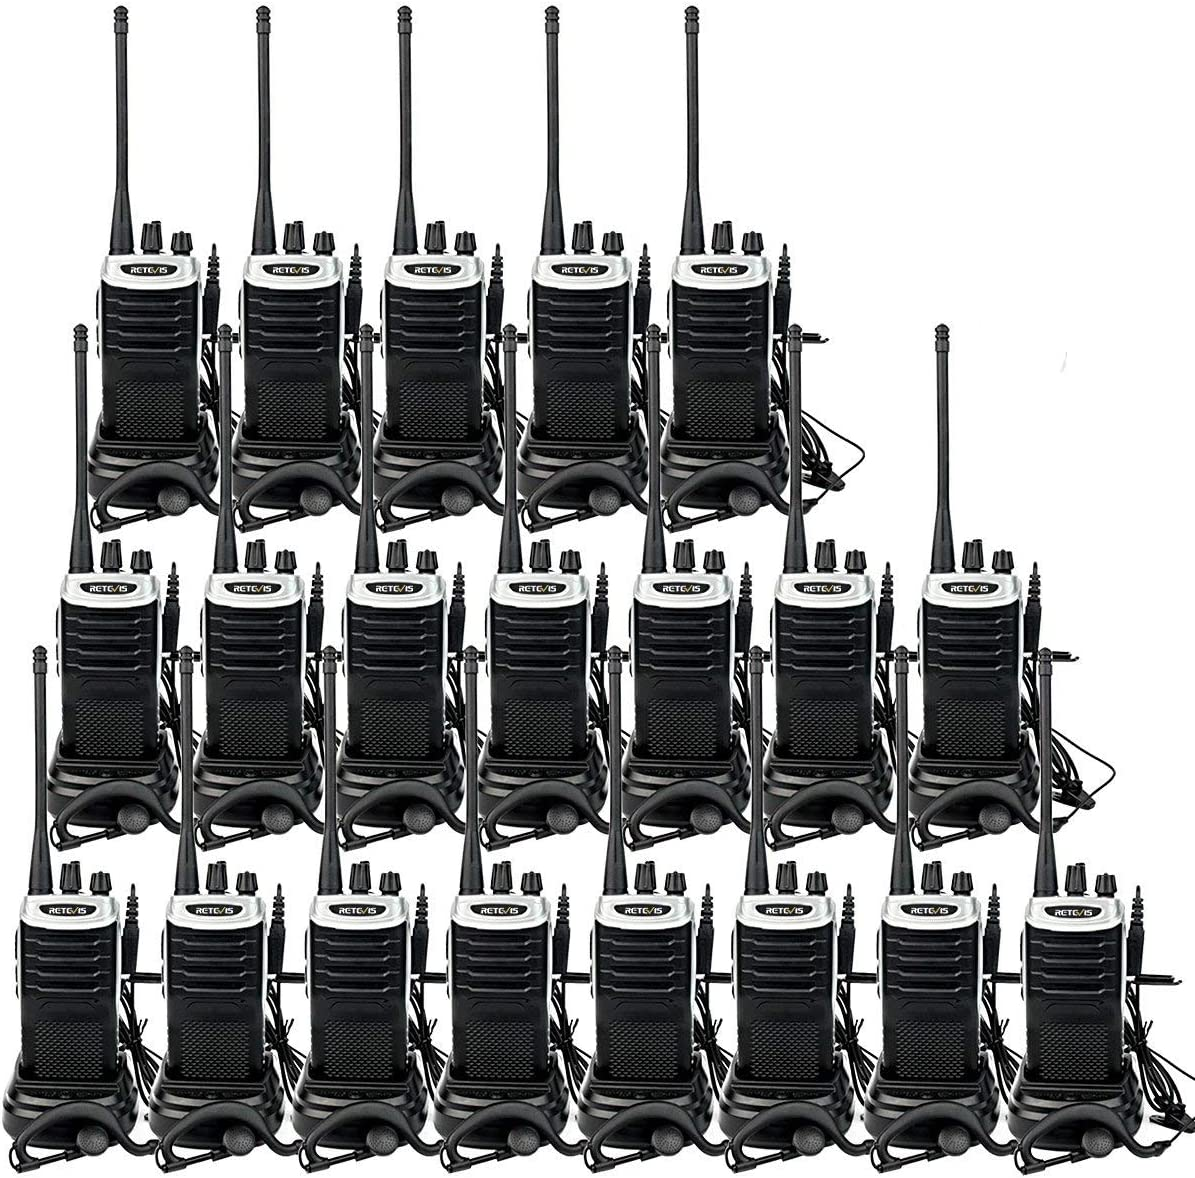 Retevis RT7 20 Pack Walkie Talkies with Earpiece, Long Range 2 Way Radios Flashlight 16CH VOX FM Emergency Business Two-Way Radios for Commercial Retail School Church Restaurant